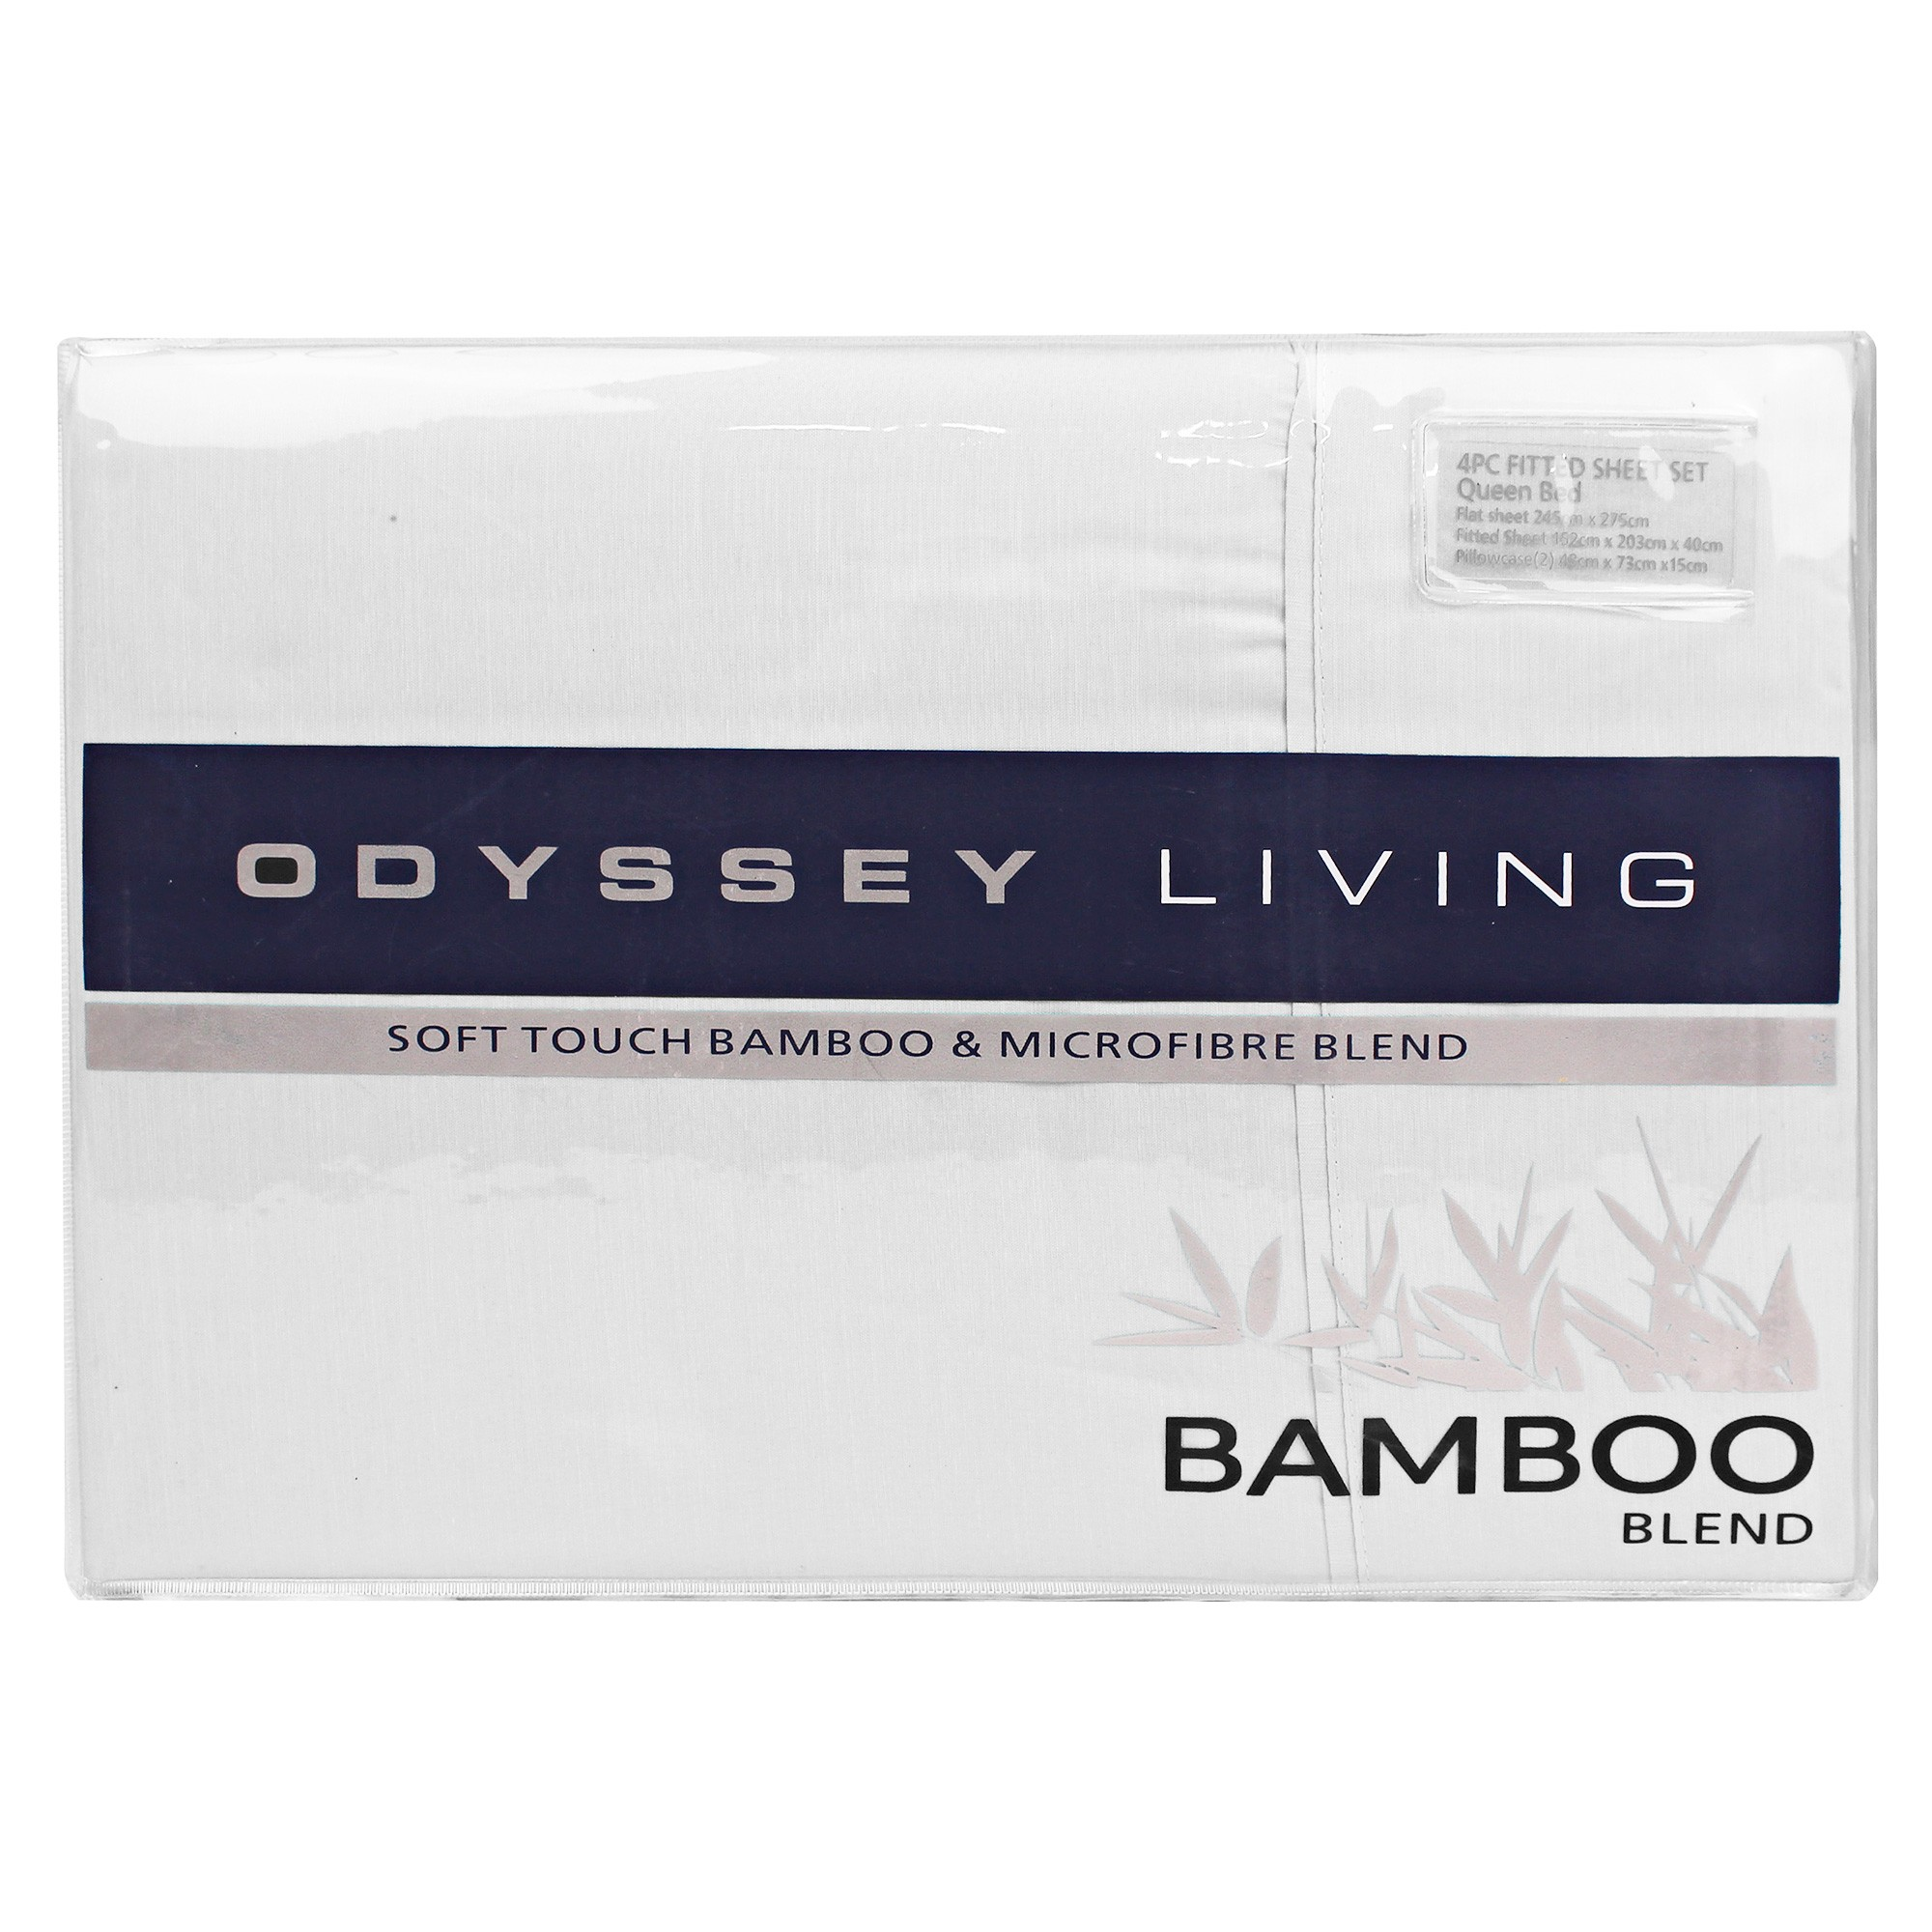 Odyssey Living Soft Touch Bamboo & Microfibre Blend Sheet Set, King, White